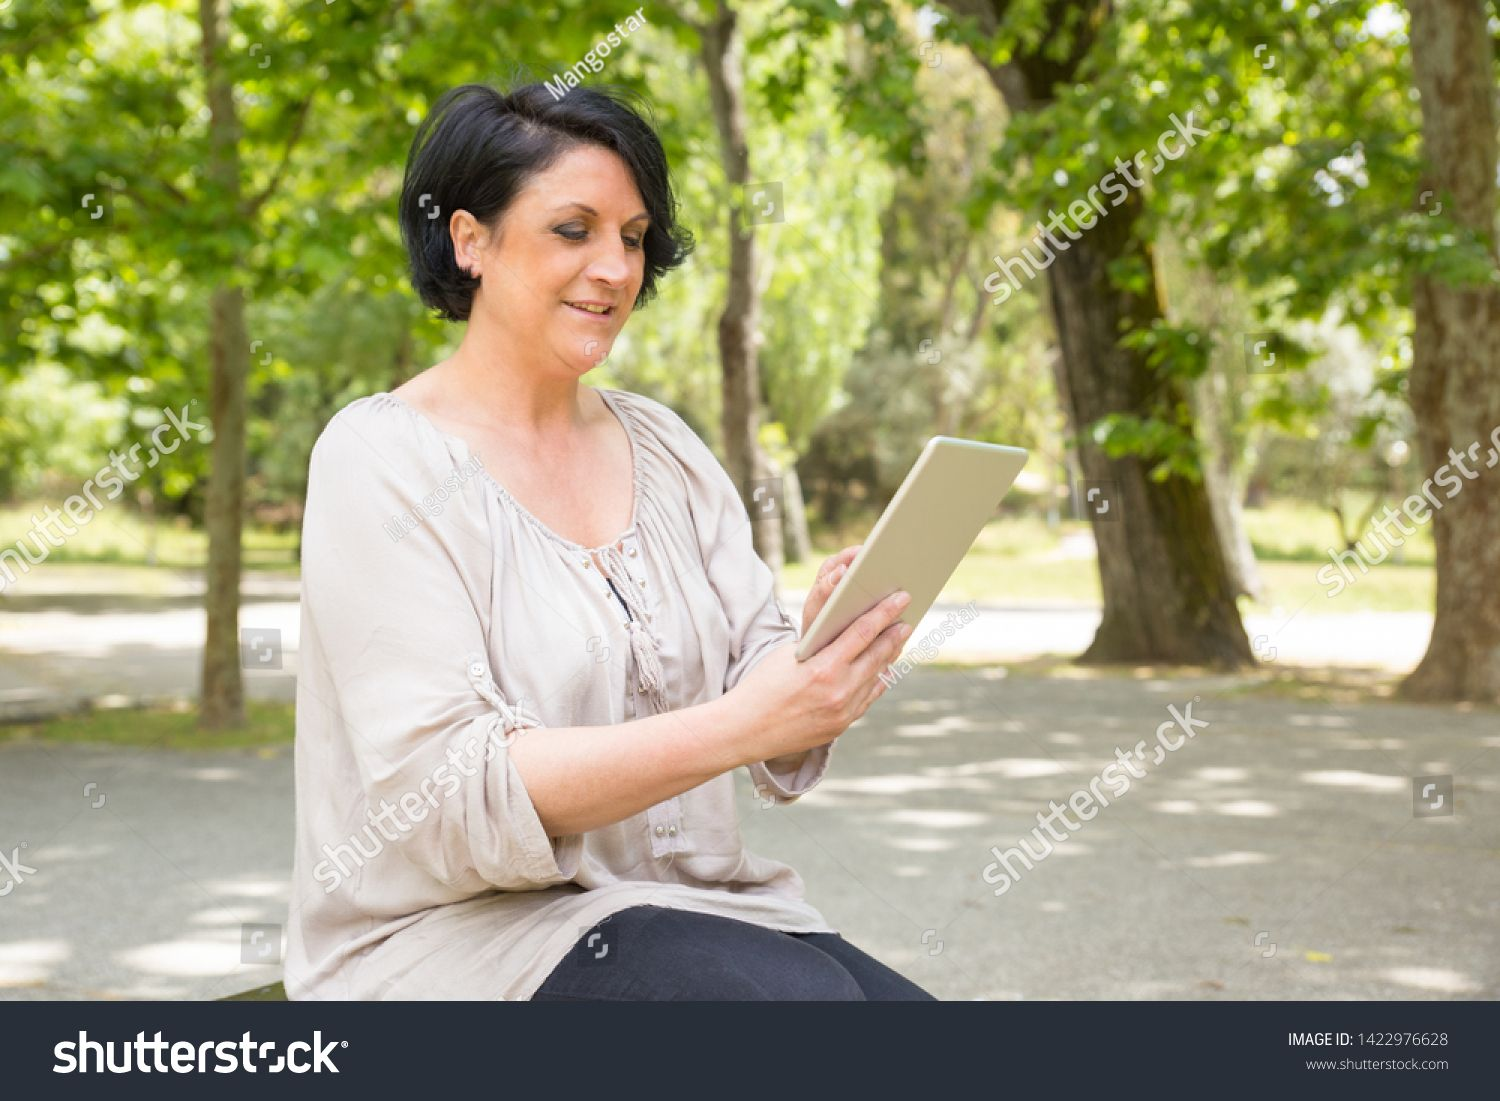 Happy Peaceful Woman Consulting Internet On Tablet Outdoors Middle Aged Caucasian Lady Sitting On Park Bench Usin Motion Graphics Animation Outdoor Caucasian